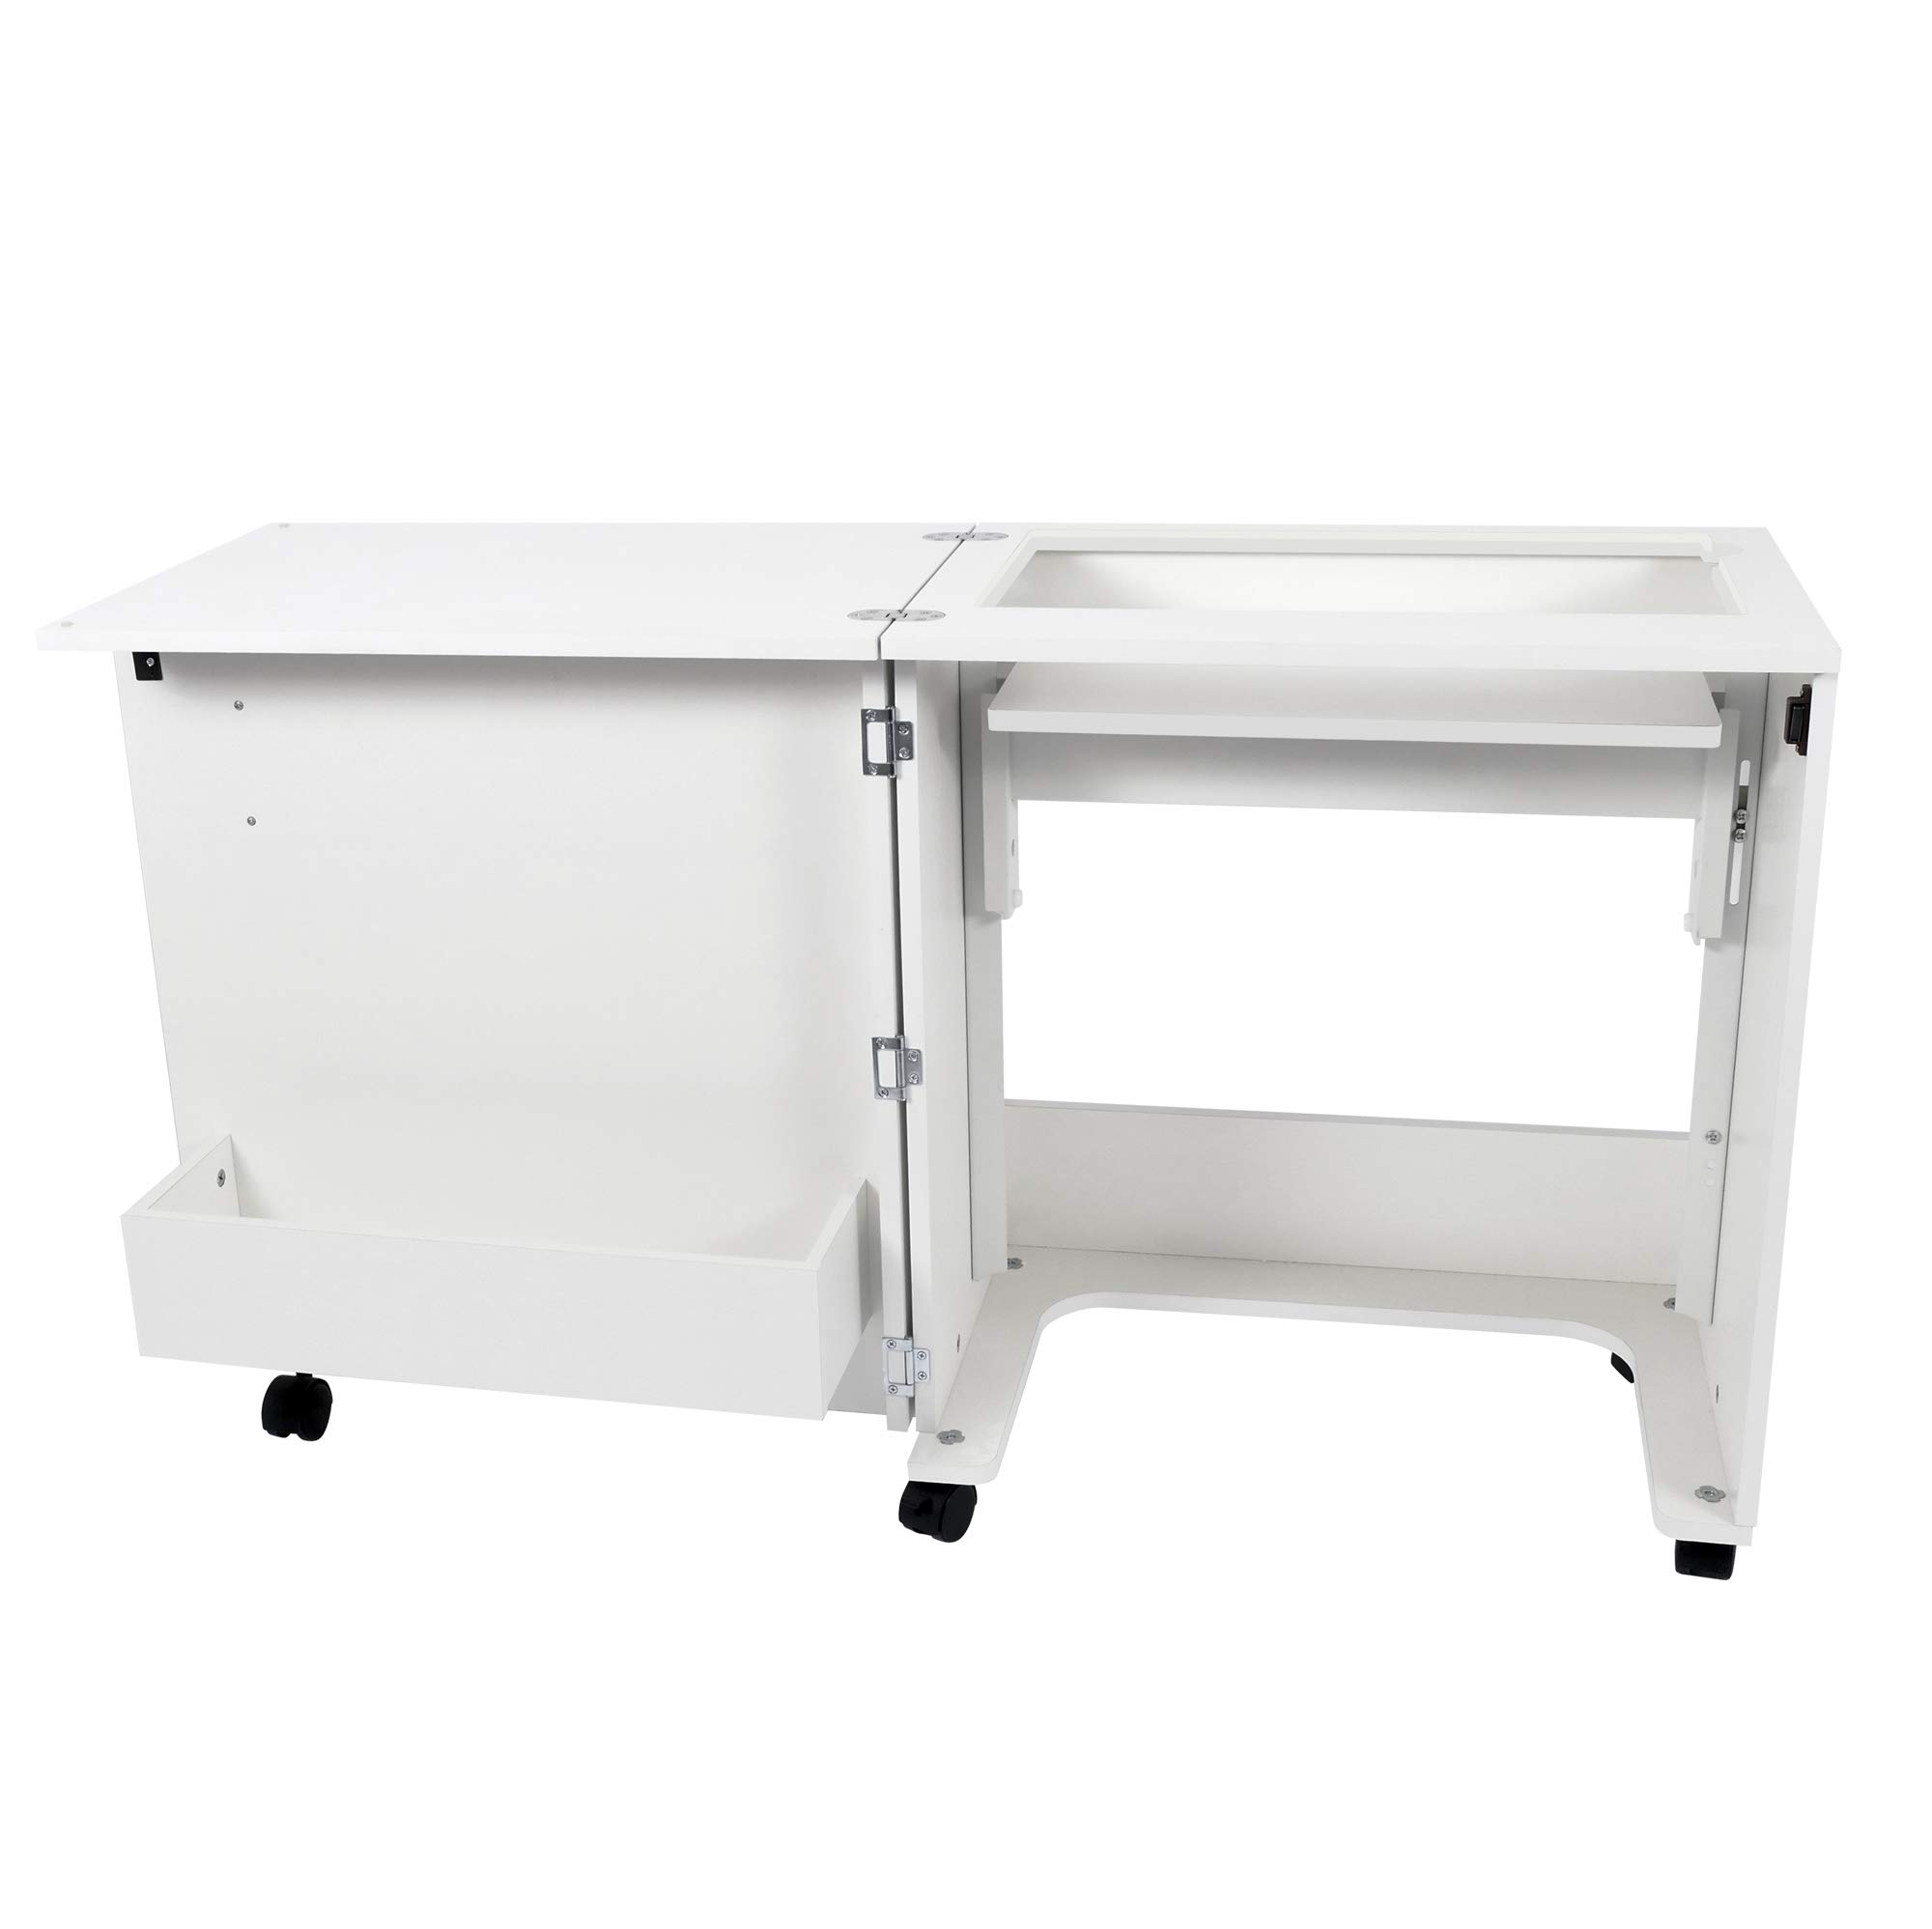 Arrow 101 Judy Sewing and Craft Table with Storage and Adjustable 3-Position Lift, White by Arrow Sewing Cabinets